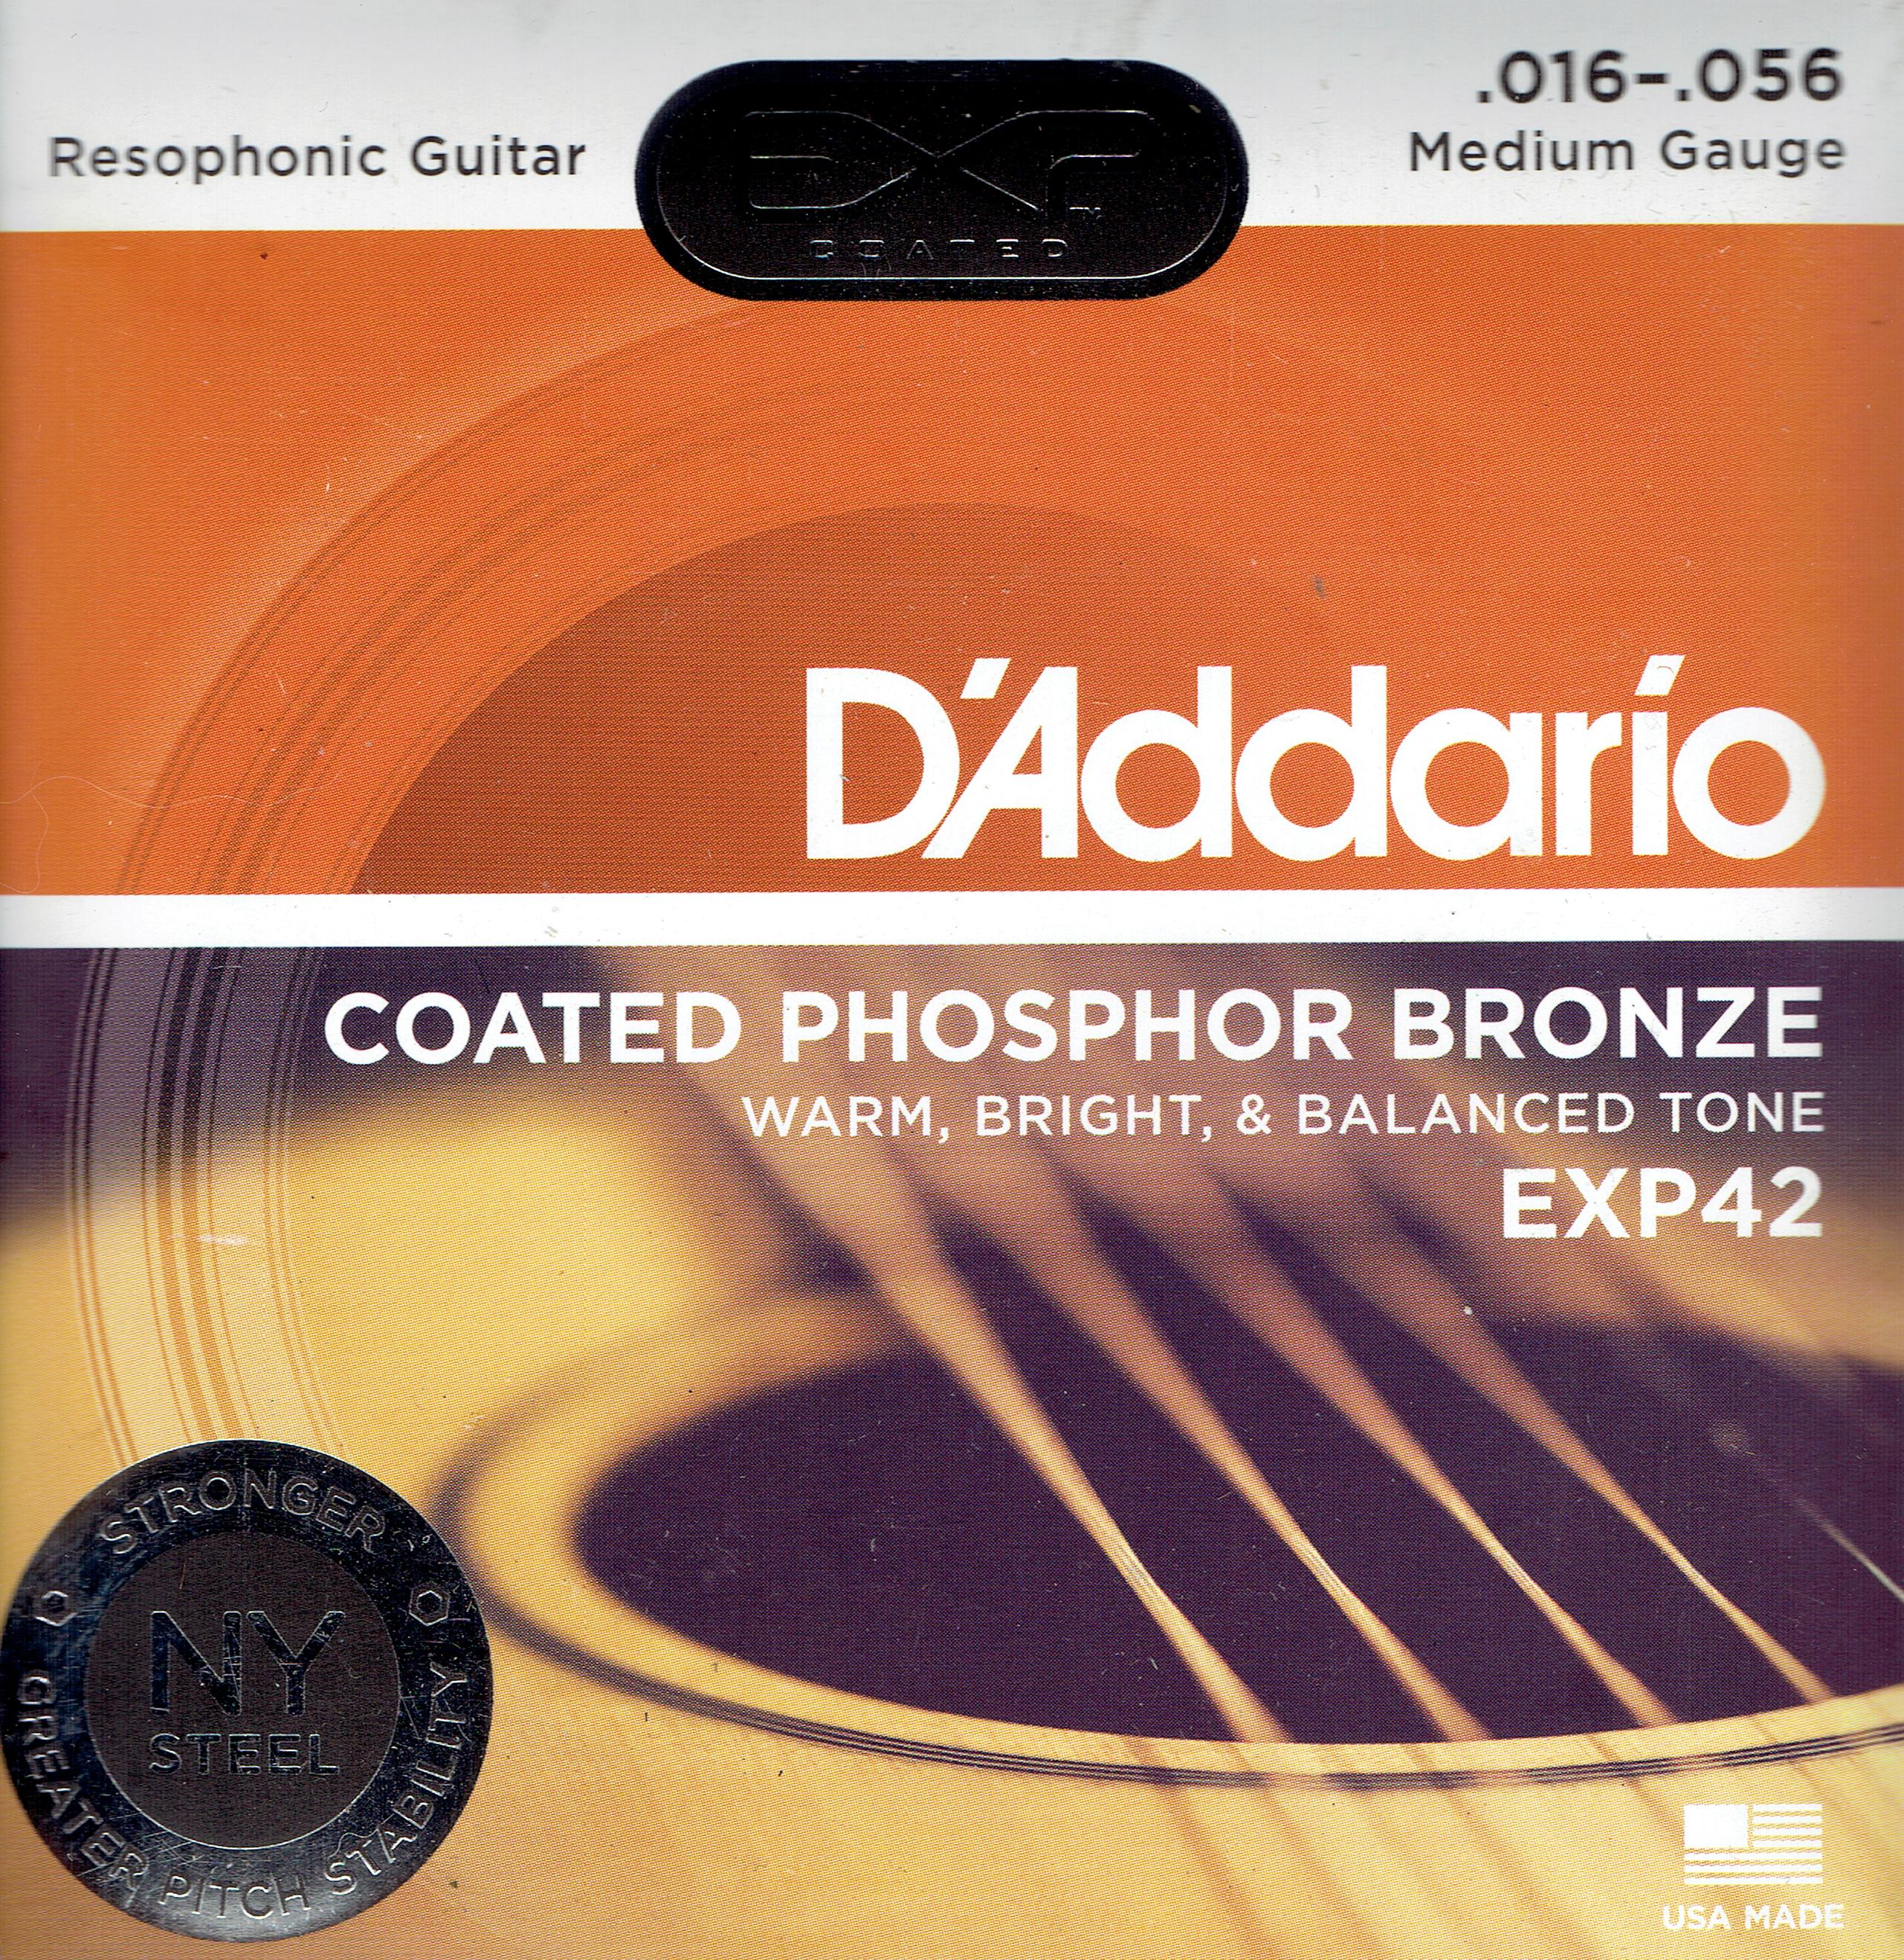 D'Addario acoustic resophonic guitar strings 16-56 EXP42